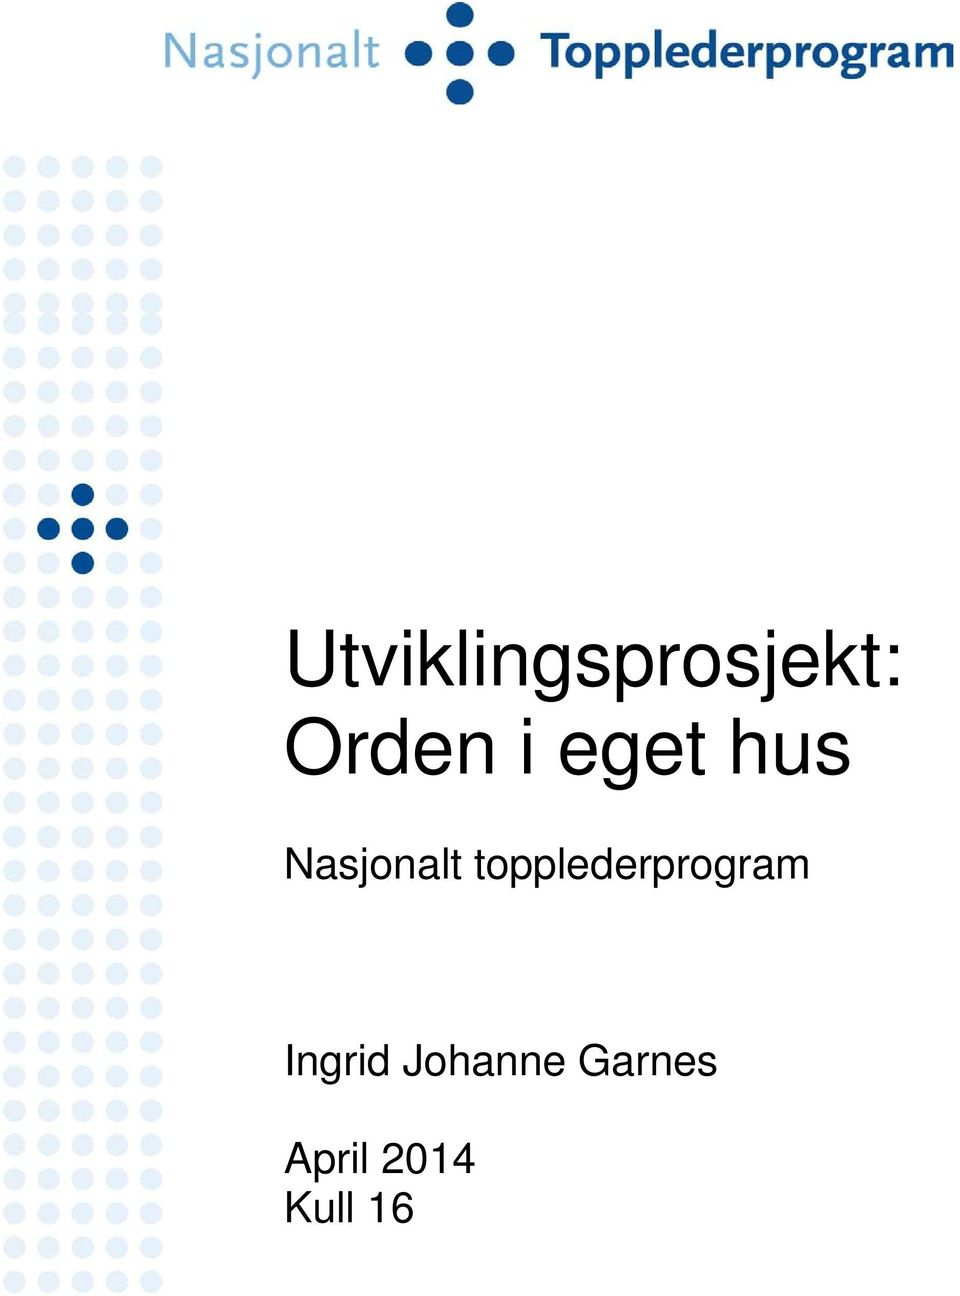 topplederprogram Ingrid